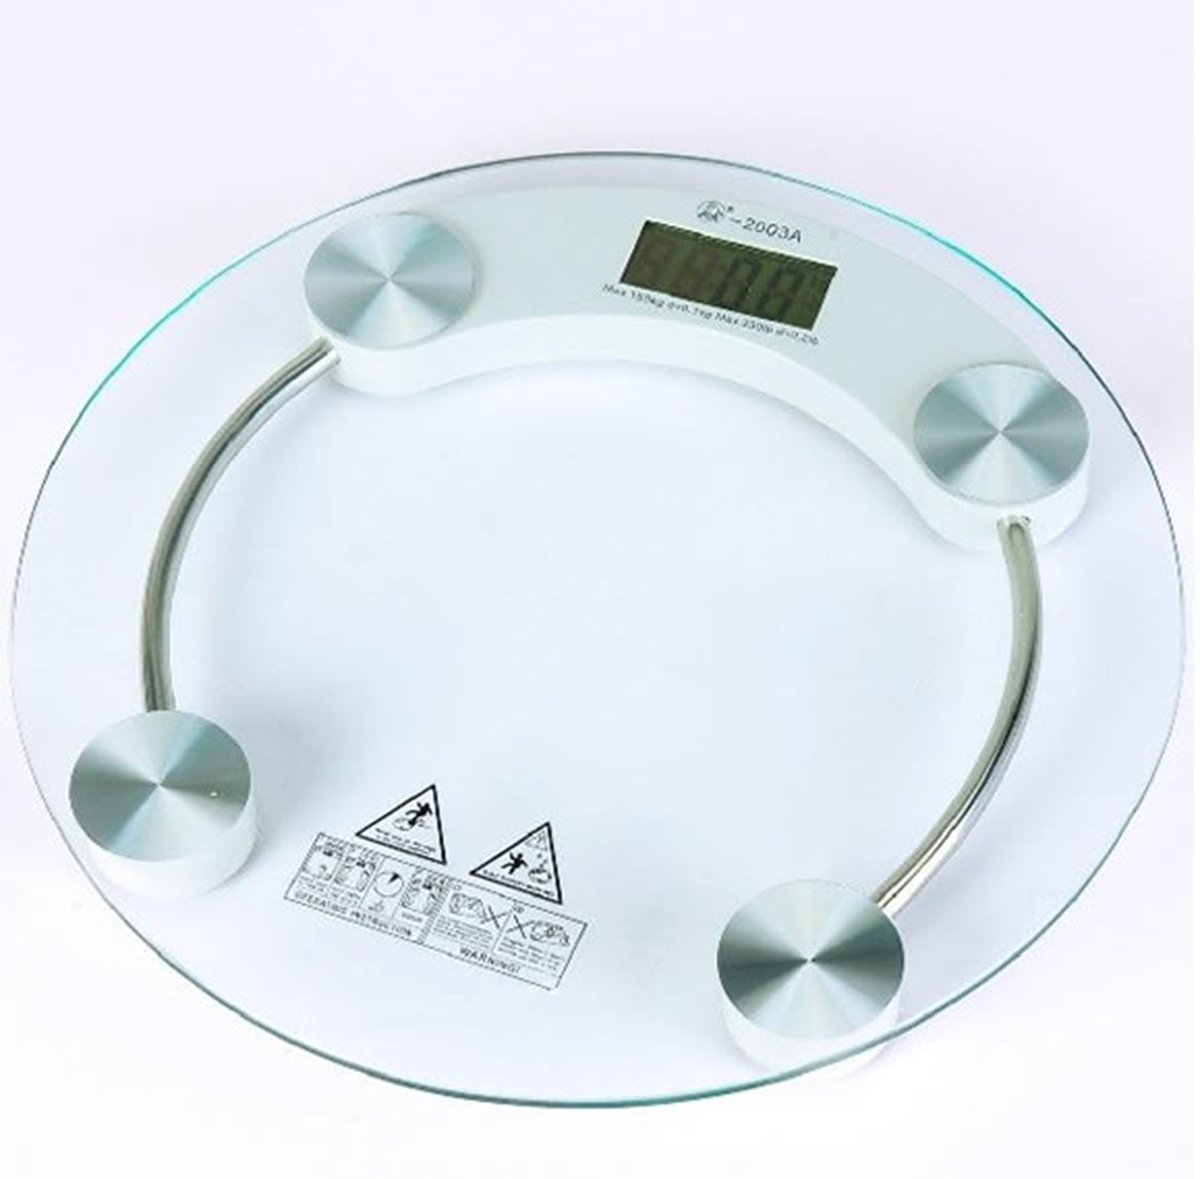 Bathroom Scales Personal Digital Round Glass Scale Capacity 180kg Was Sold